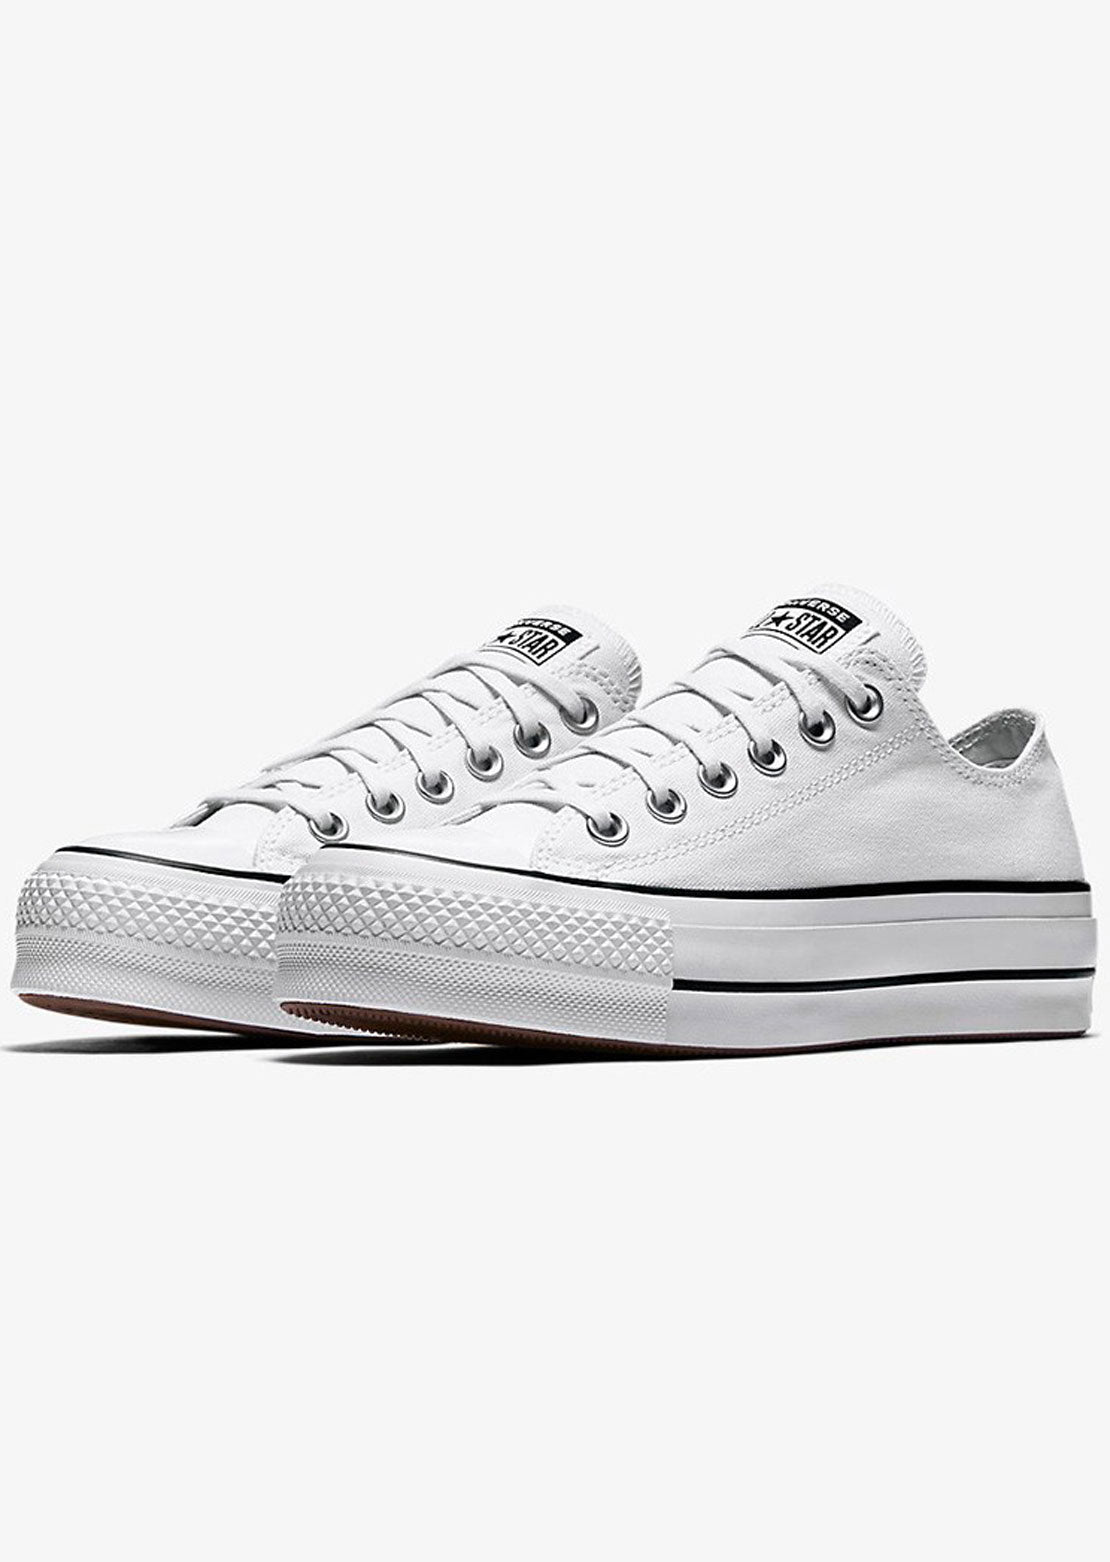 Converse Women's Chuck Taylor OX Lift Platform Shoes 560251C White/Black